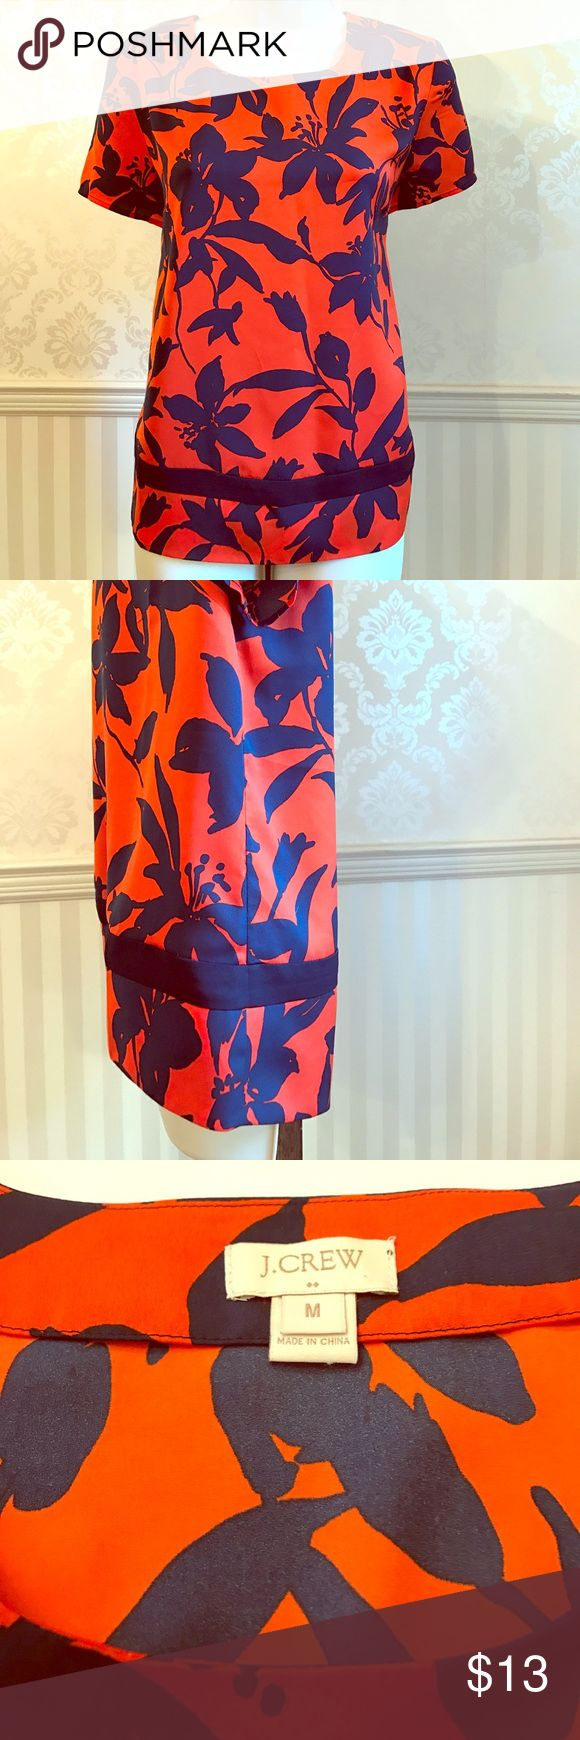 """NWOT J. Crew Floral Split-Hem Shirt Never worn J. Crew floral split-hem top. Perfect condition! Vibrant orange color with navy flowers. Looks great with a pair of dark skinny jeans! Slouchy fit. 100% polyester. Bust is about 38"""", length is 25.5"""". Size M. J. Crew Tops Blouses"""